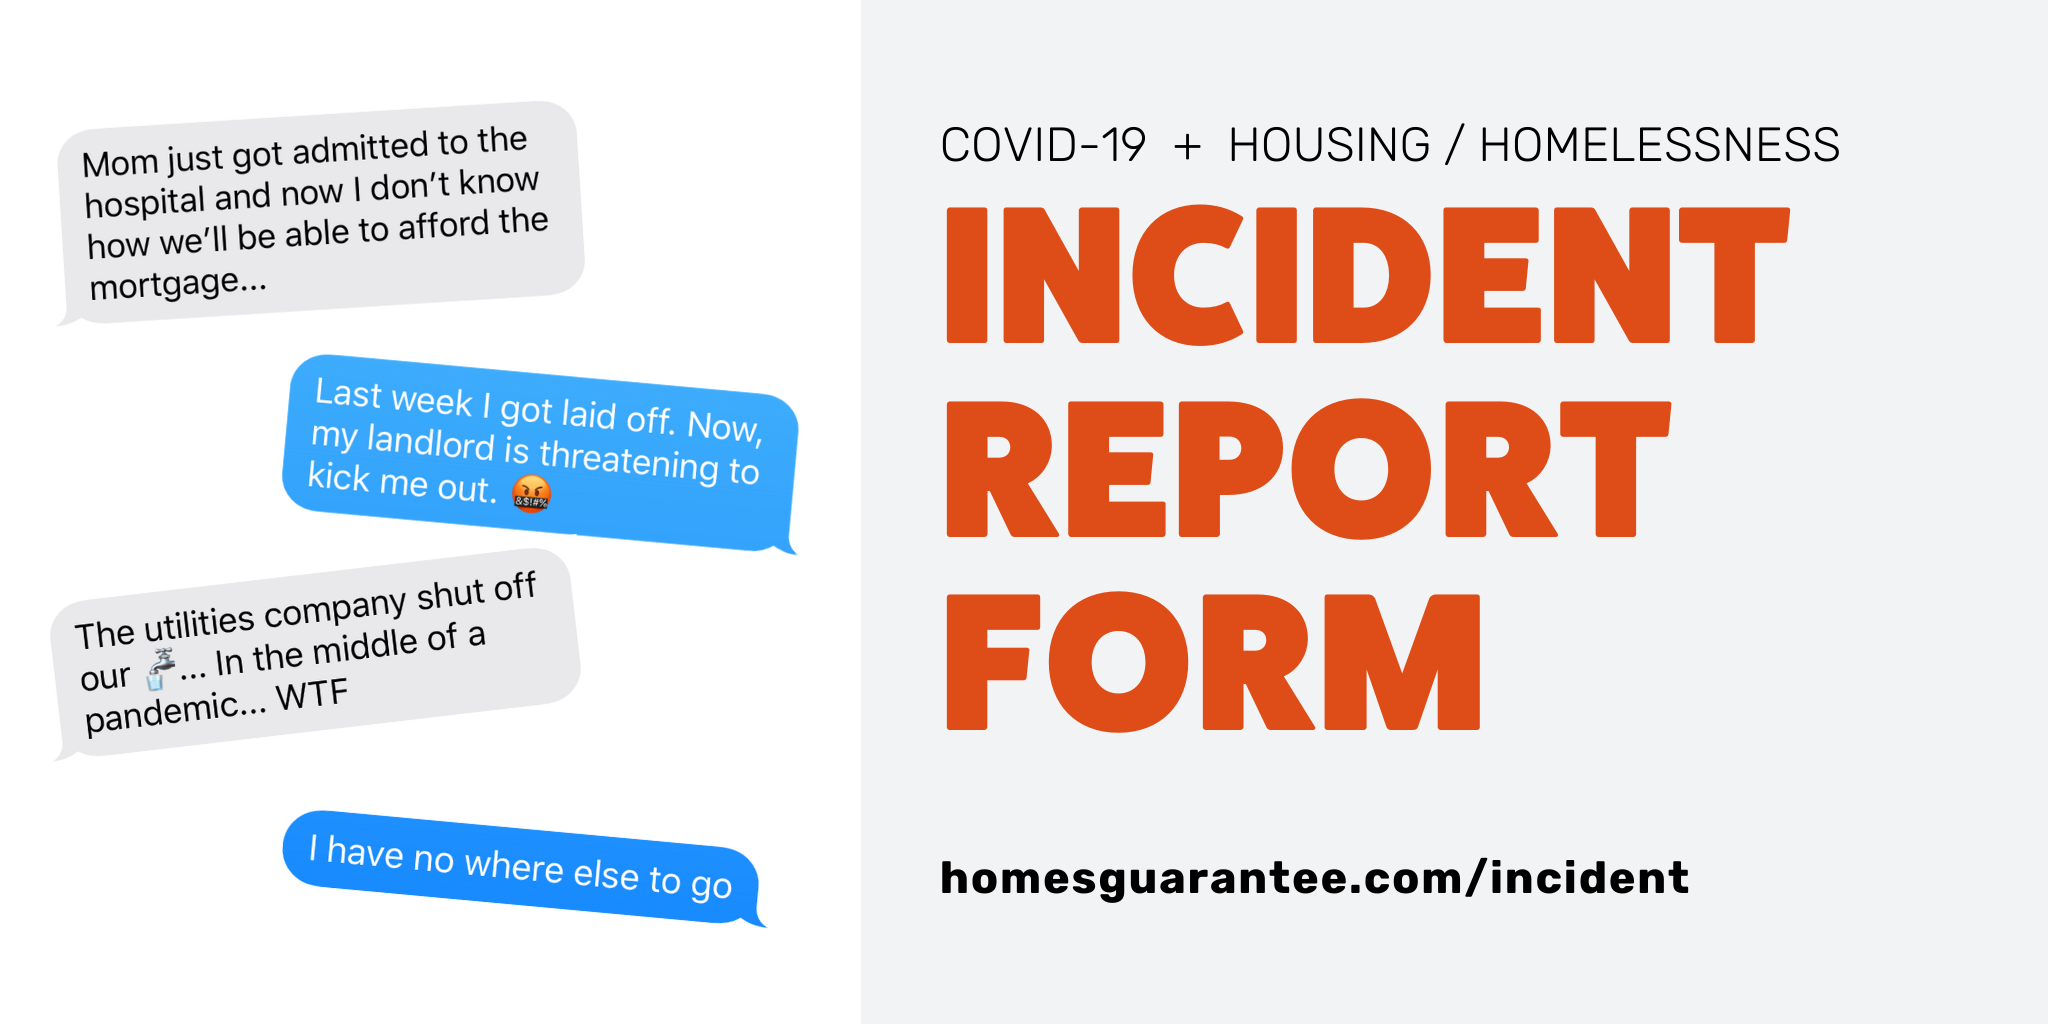 Submit a COVID-19 Housing Incident Report